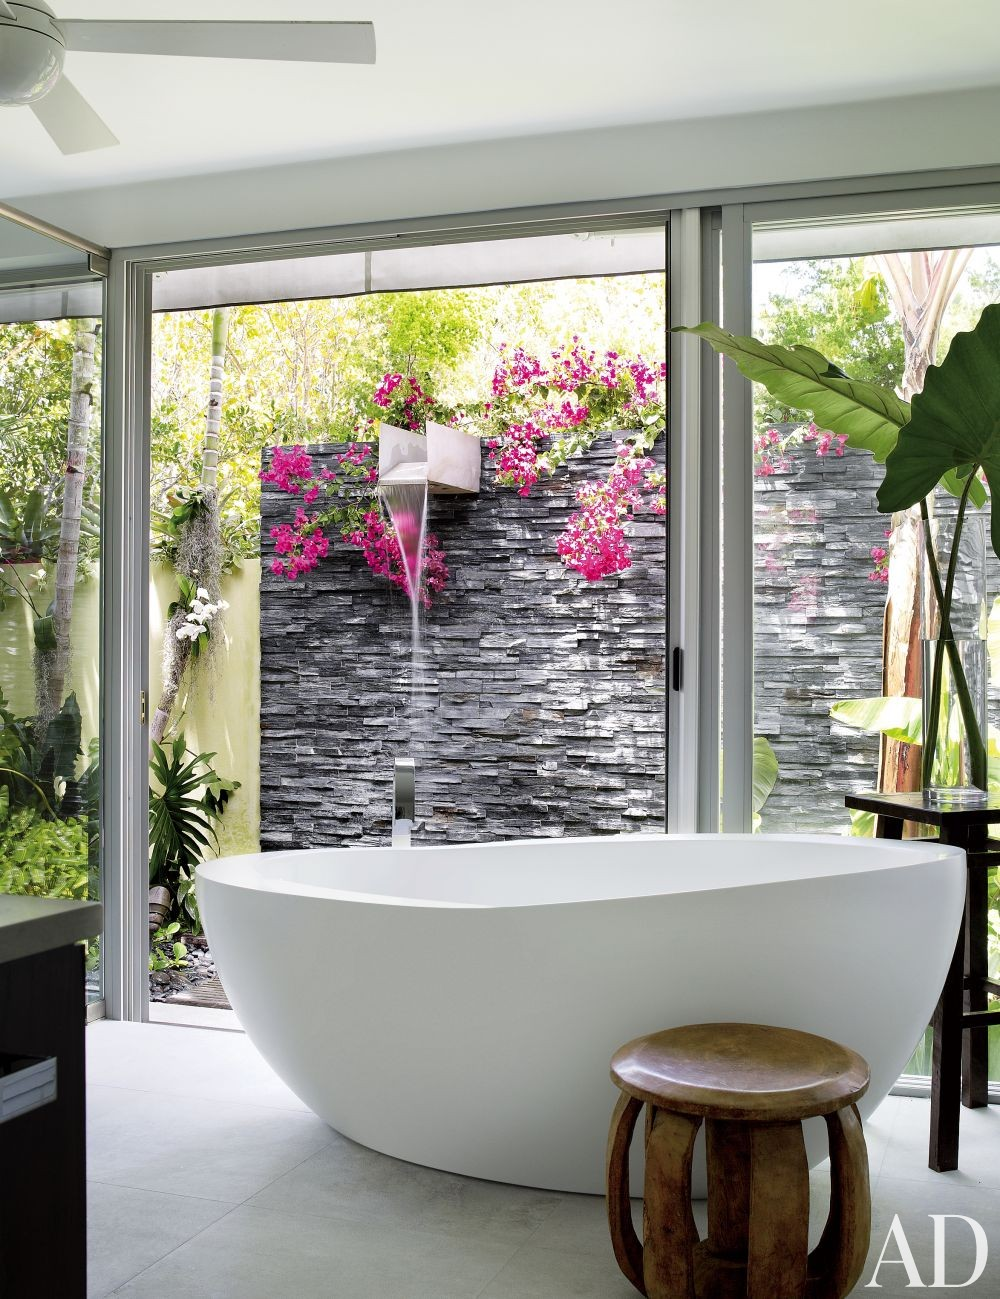 Exotic Bathroom by Malcolm James Kutner Inc. and Thomas E. Pope in Key West, FL